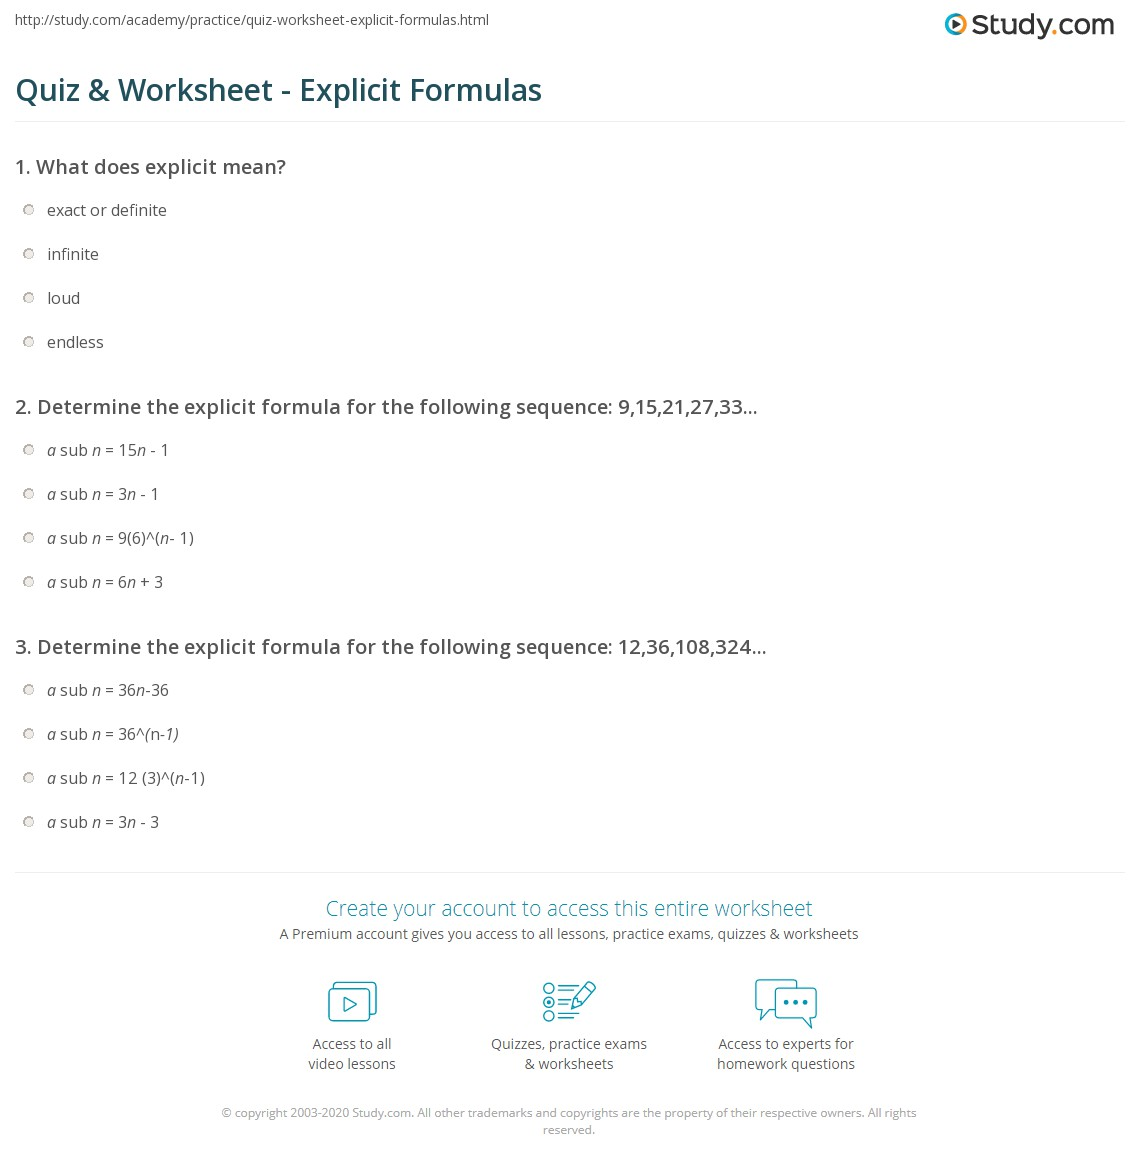 Quiz & Worksheet - Explicit Formulas | Study.com